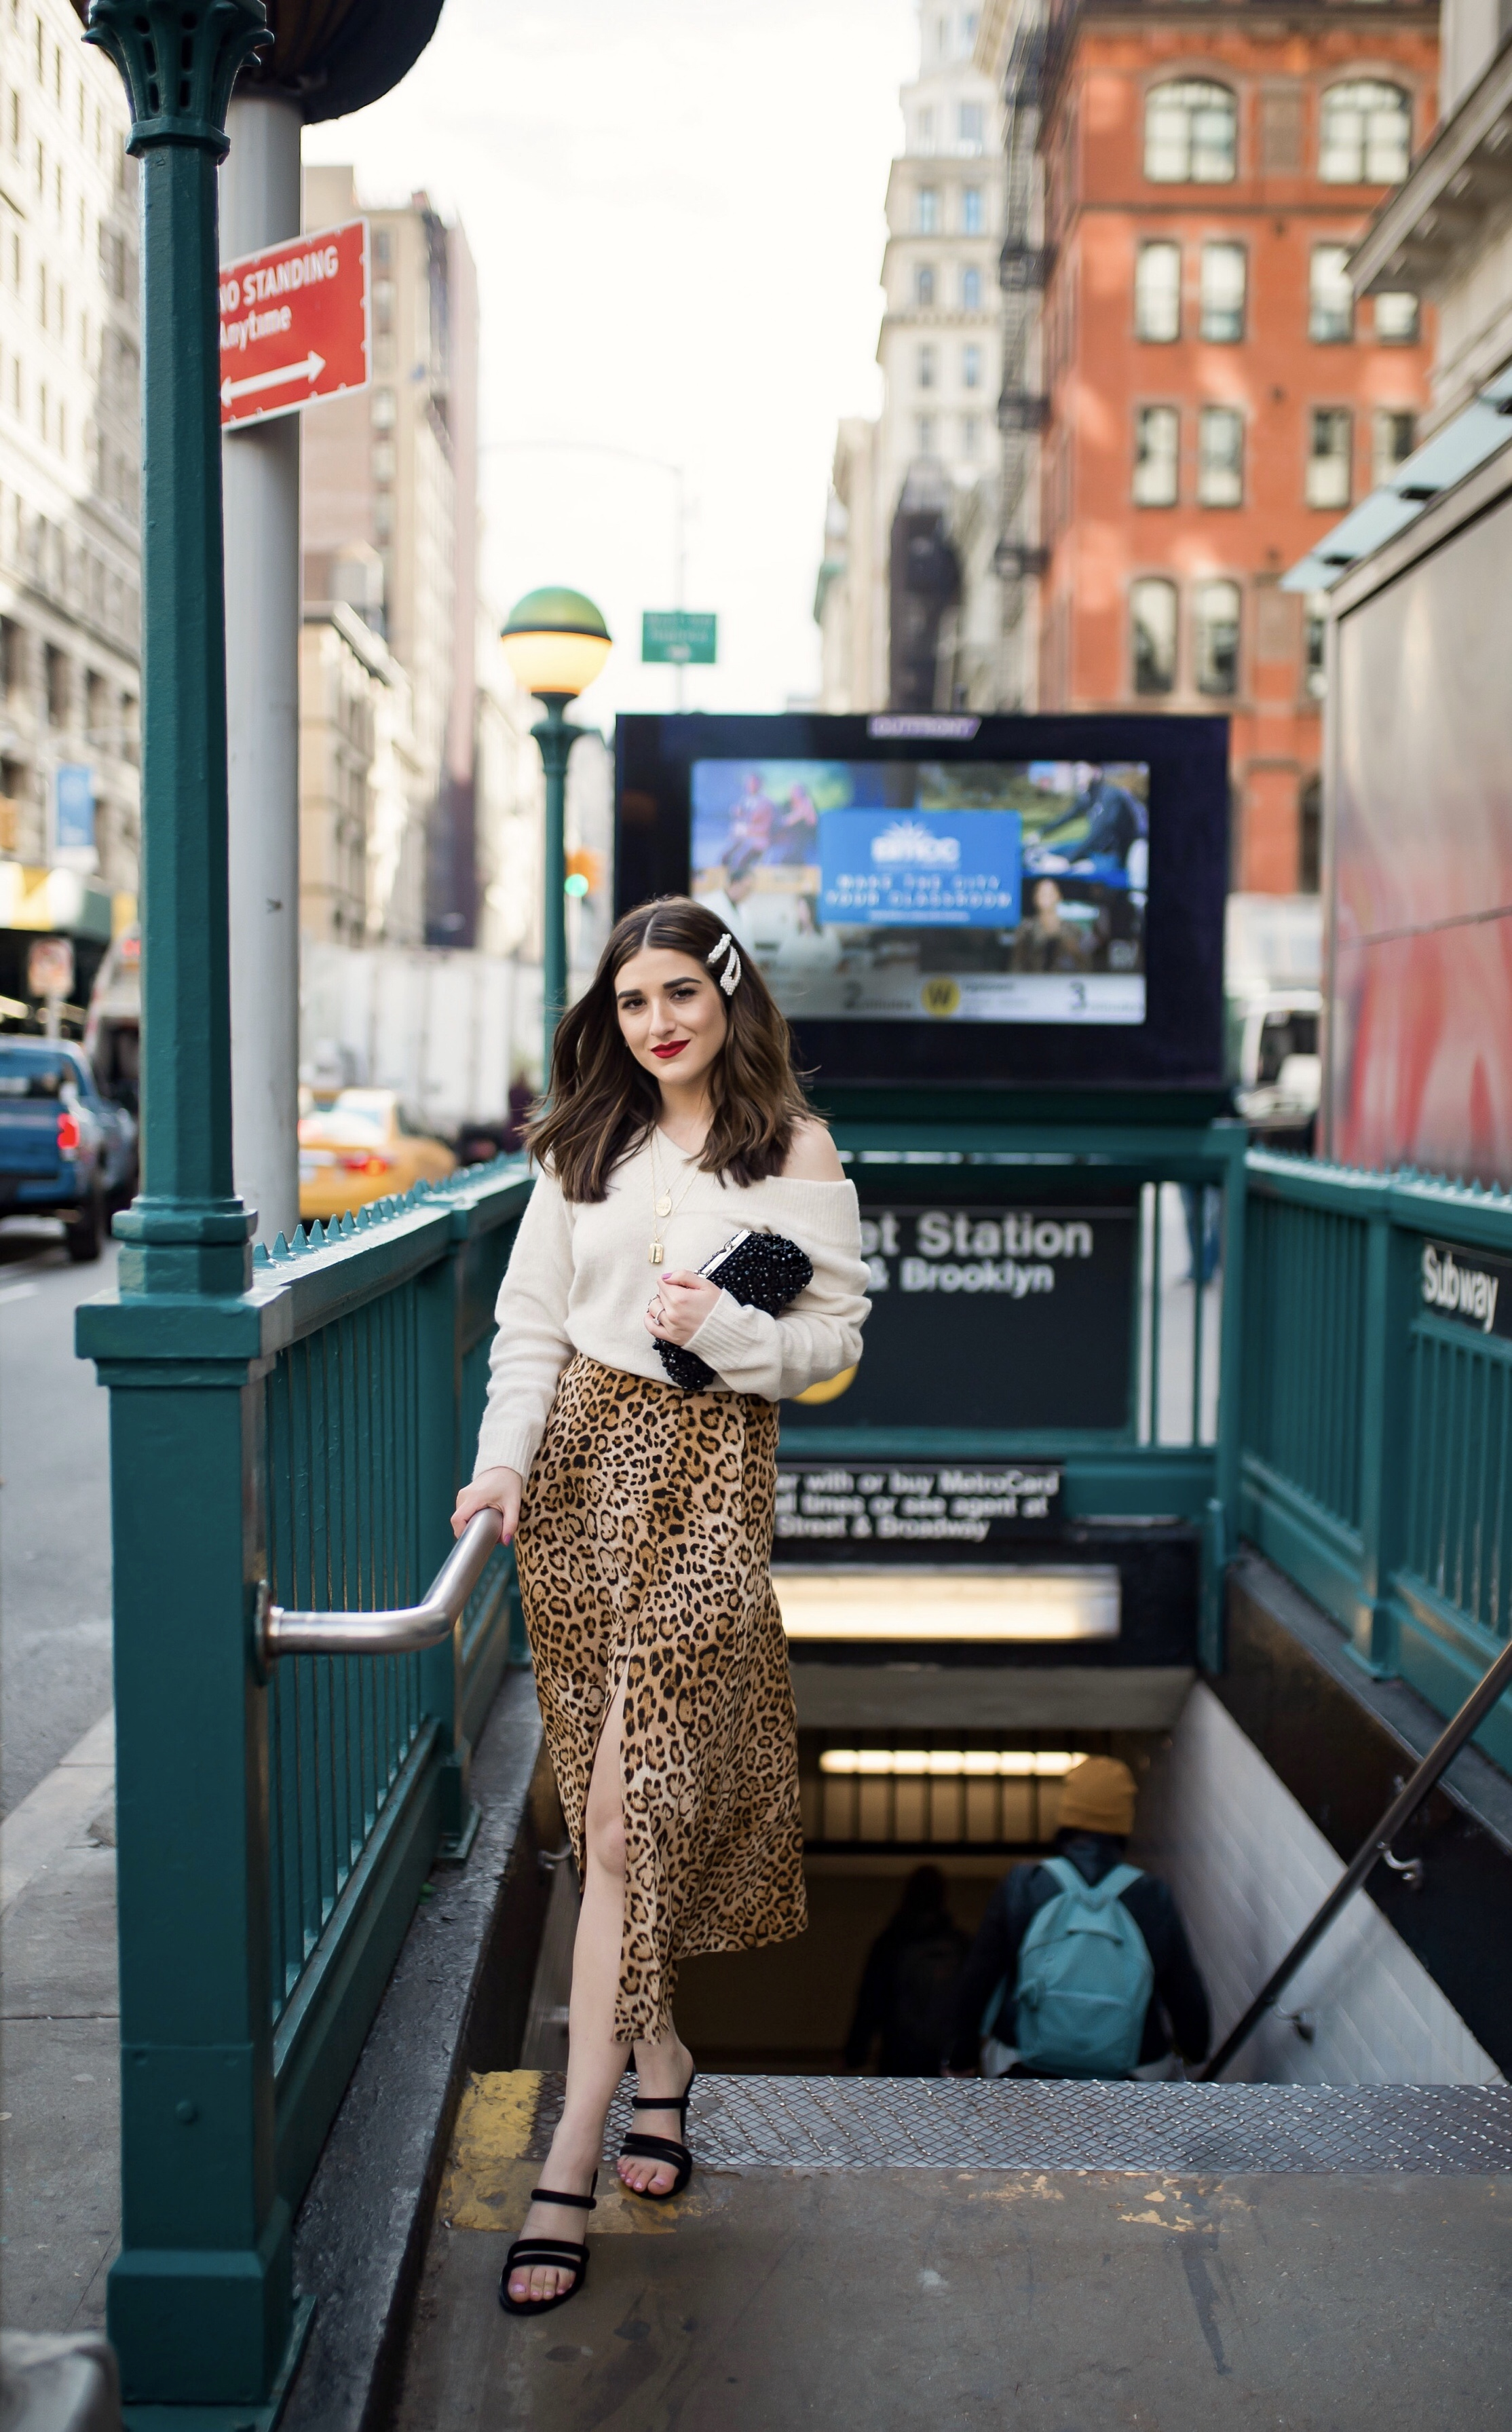 The Instagram Likes Debate Leopard Midi Skirt Beige Sweater Esther Santer Fashion Blog NYC Street Style Blogger Outfit OOTD Trendy Shopping Girl What Wear H&M Zara Pearl Barrettes Hair Clips Accessories Sandals Mules Necklaces Beaded Clutch Spring Bag.jpg